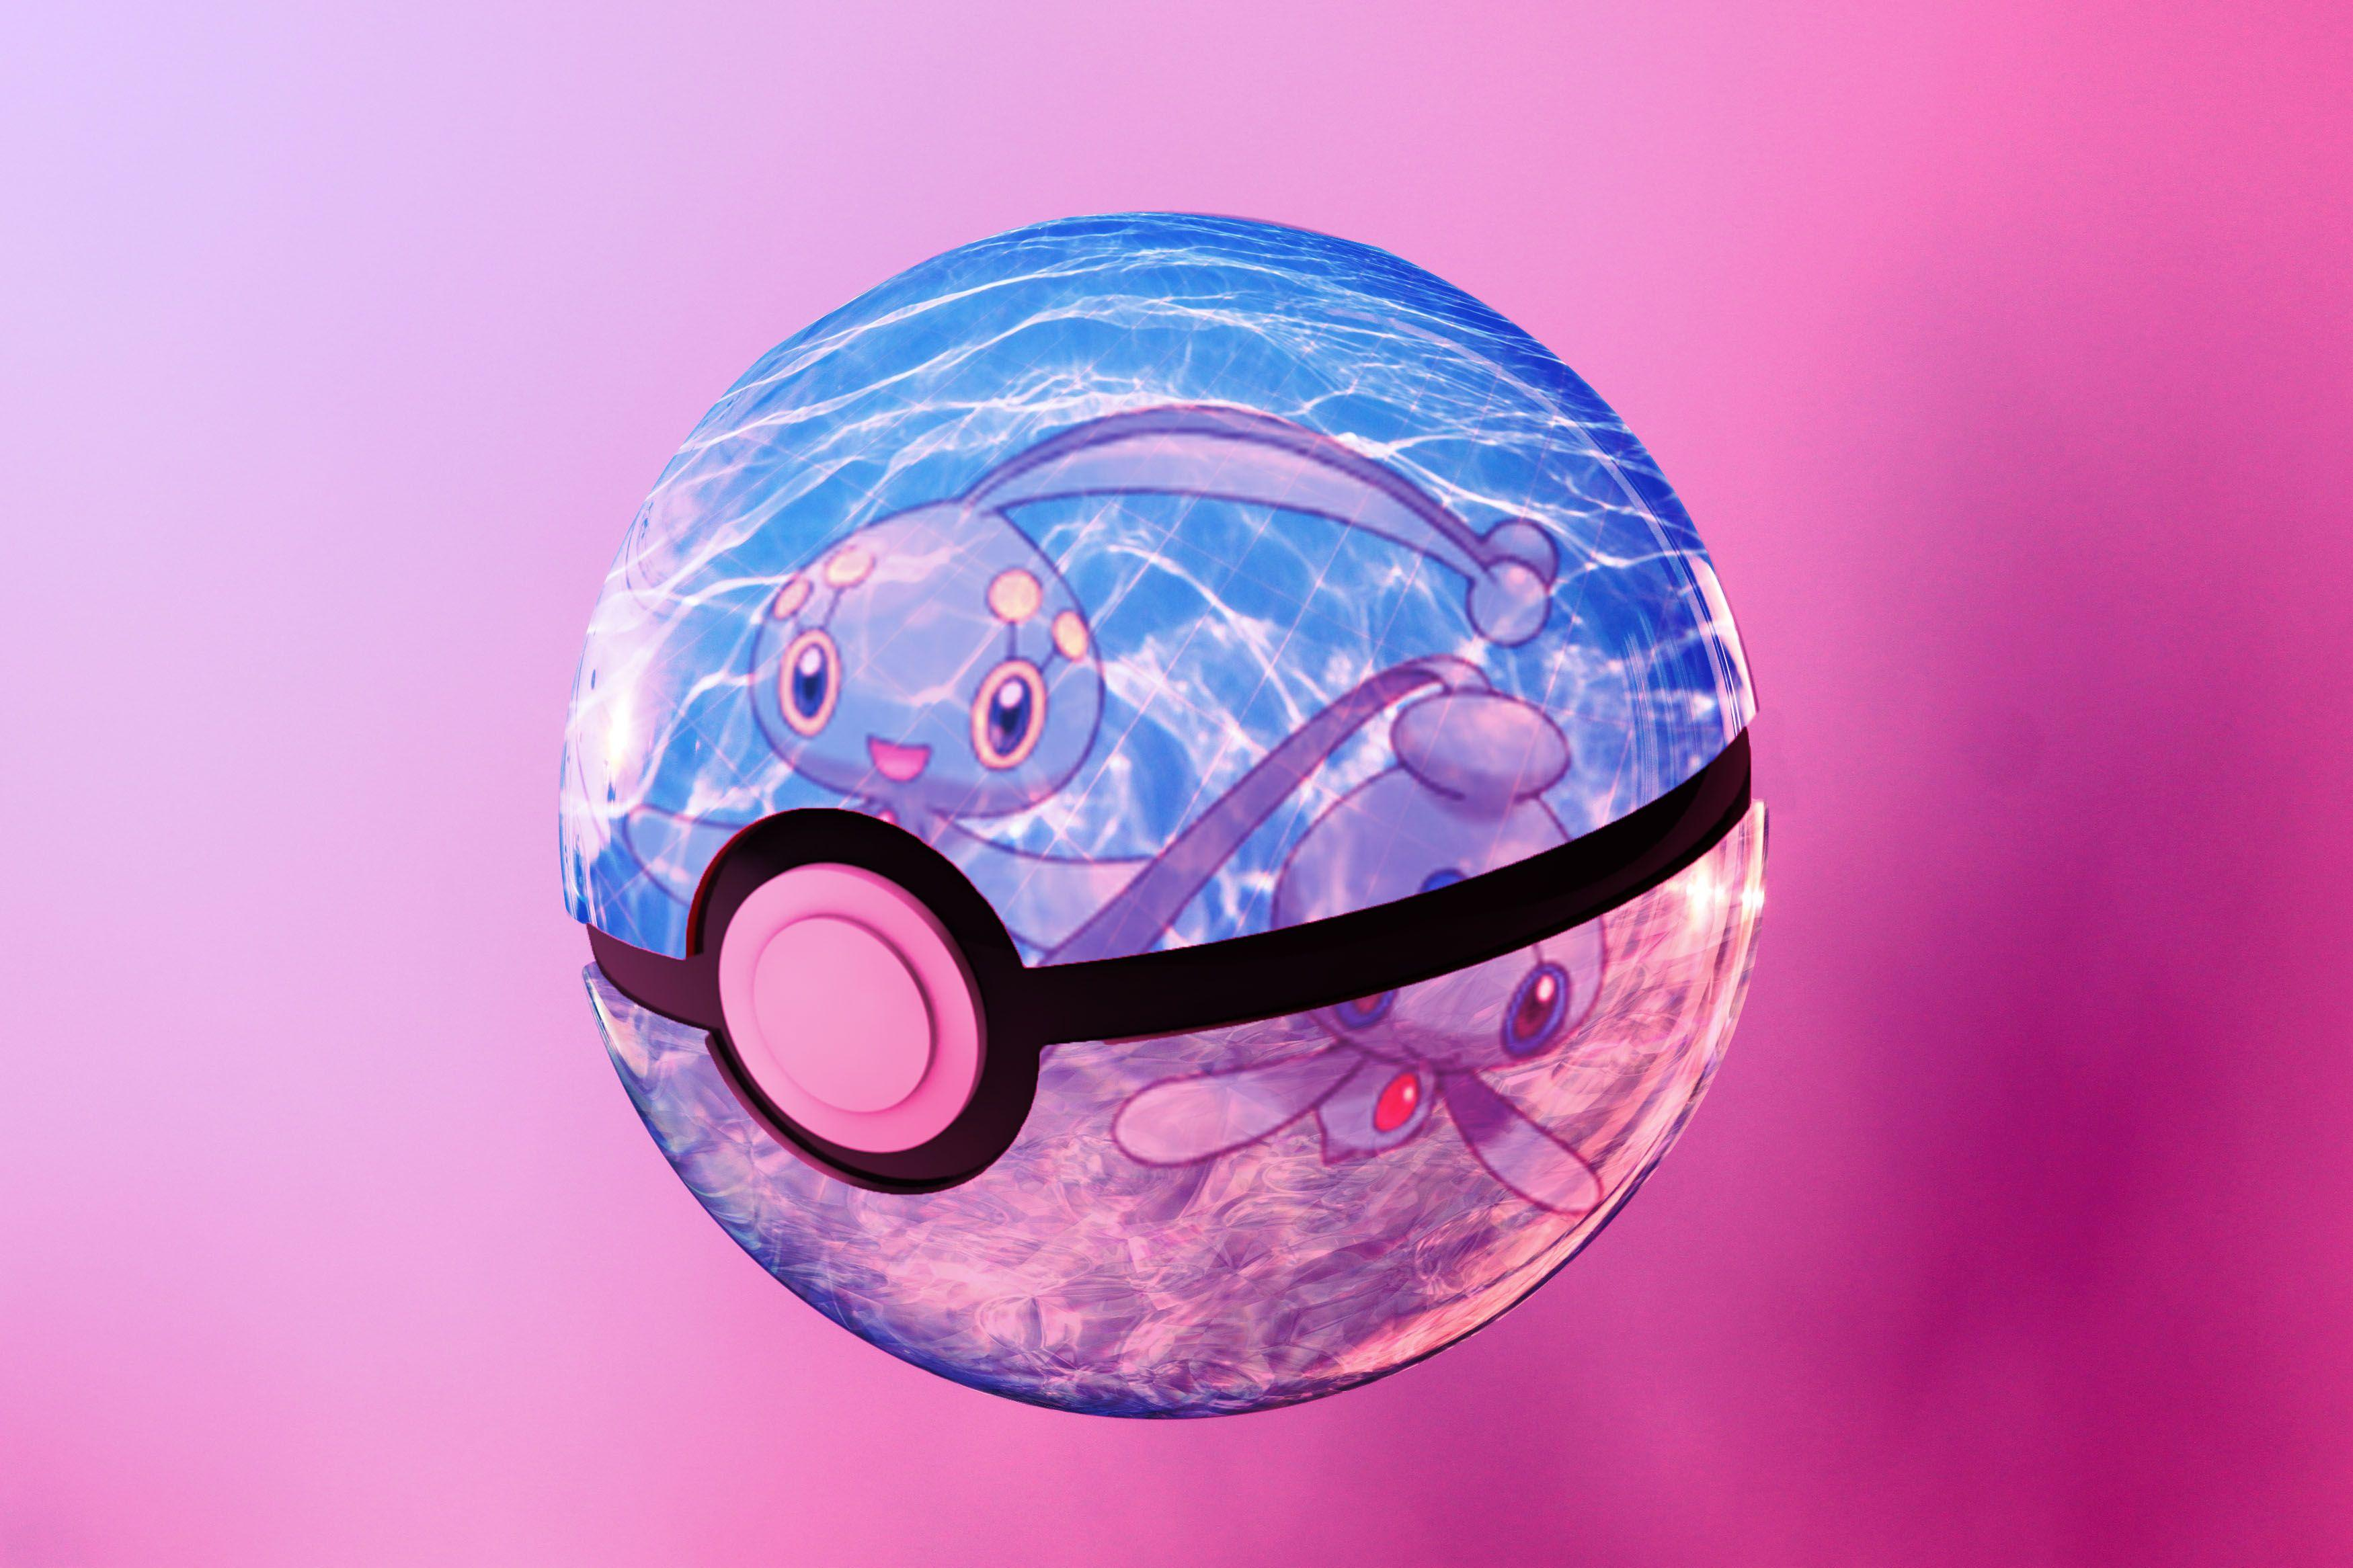 Manaphy Wallpapers, Special HDQ Manaphy Wallpapers